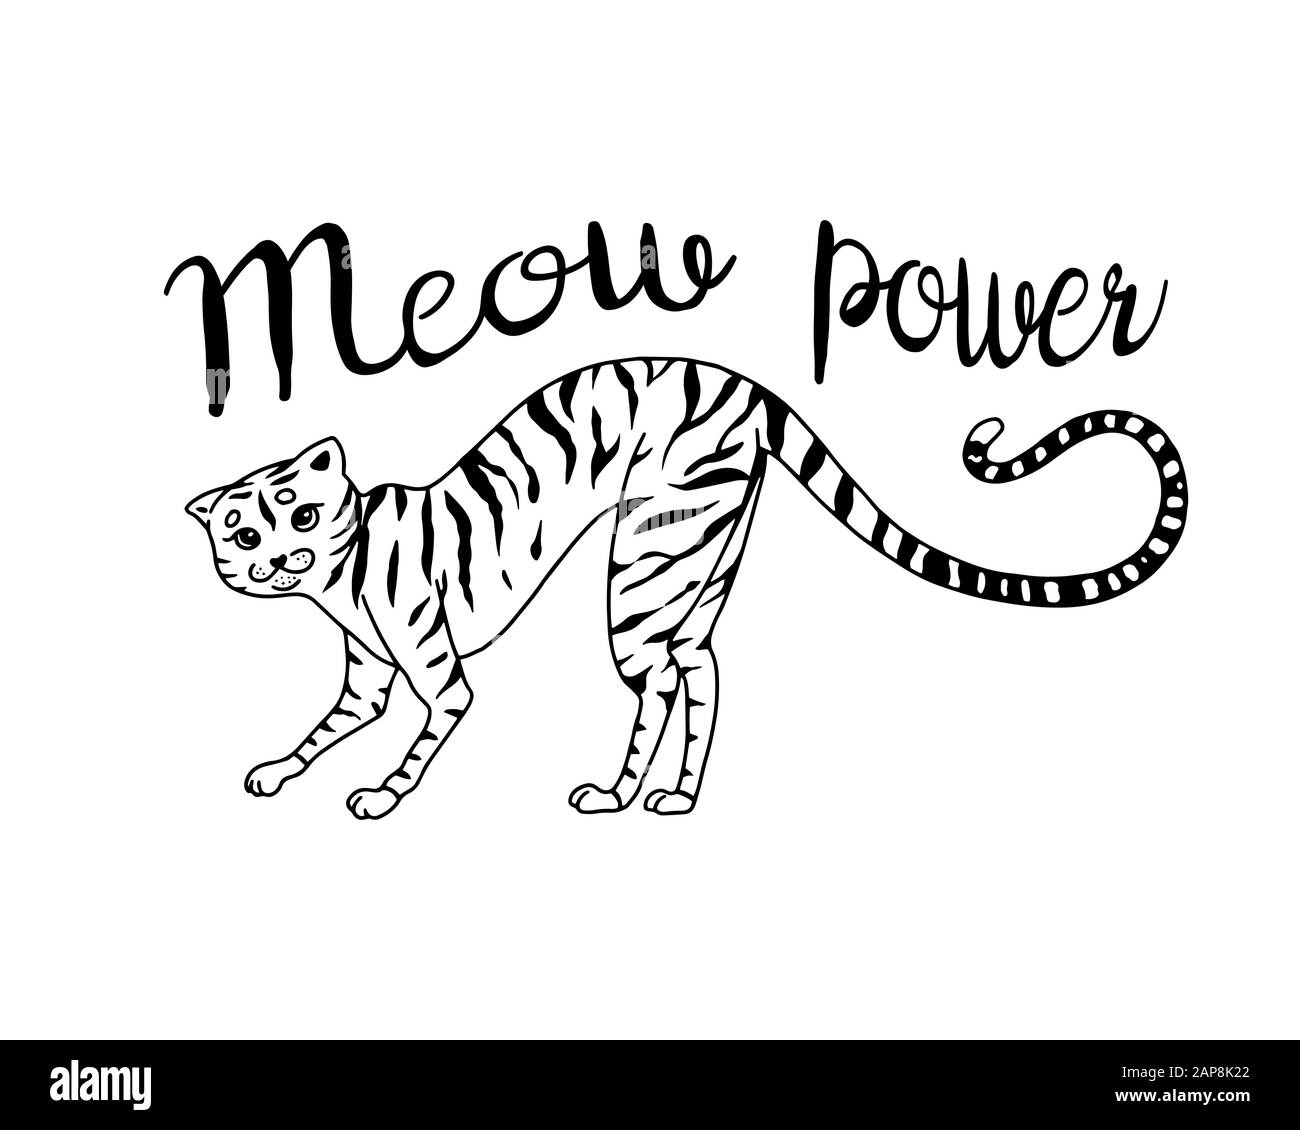 Striped Kitty Cat Meow Power Cute Pet Hand Drawn Engraved Sketch For Logo Or Label Or Banner Or T Shirt Vector Illustration In Outline Vintage Stock Vector Image Art Alamy,Patty Pan Squash